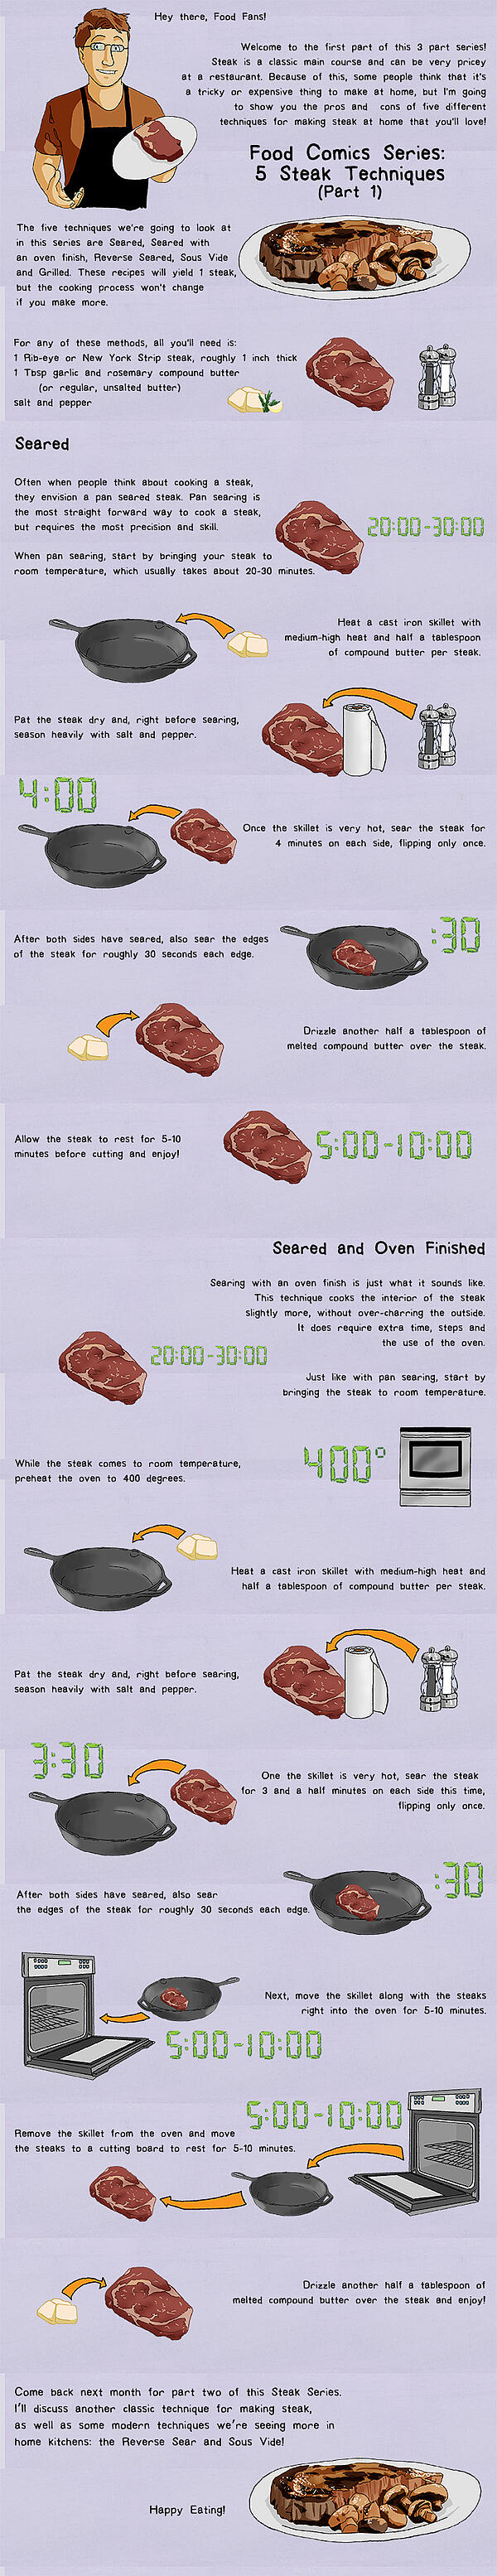 Hey there, Food Fans! Welcome to the first part of this 3 part series! Steak is a classic main course and can be very pricey at a restaurant. Because of this, some people think that it's a tricky or expensive thing to make at home, but I'm going to show you the pros and cons of five different techniques for making steak at home that you'll love! Food Comics Series: 5 Steak Techniques (Part 1) The five techniques we're going to look at in this series are Seared, Seared with an oven finish, Reverse Seared, Sous Vide and Grilled. These recipes will yield 1 steak, but the cooking process won't change if you make more. For any of these methods, all you'll need is: 1 Rib-eye or New York Strip steak, roughly 1 inch thick 1 Tbsp garlic and rosemary compound butter (or regular, unsalted butter) salt and pepper Seared Often when people think about cooking a steak, they envision a pan seared steak. Pan searing is the most straight forward way to cook a steak, but requires the most precision and skill. When pan searing, start by bringing your steak to room temperature, which usually takes about 20-30 minutes. Heat a cast iron skillet with medium-high heat and half a tablespoon of compound butter per steak. Pat the steak dry and, right before searing, season heavily with salt and pepper. Once the skillet is very hot, sear the steak for 4 minutes on each side, flipping only once. After both sides have seared, also sear the edges of the steak for roughly 30 seconds each edge. Drizzle another half a tablespoon of melted compound butter over the steak. Allow the steak to rest for 5-10 minutes before cutting and enjoy! Seared and Oven Finished Searing with an oven finish is just what it sounds like. This technique cooks the interior of the steak slightly more, without over-charring the outside. It does require extra time, steps and the use of the oven. Just like with pan searing, start by bringing the steak to room temperature. While the steak comes to room temperature, preheat the oven to 400 degrees. Heat a cast iron skillet with medium-high heat and half a tablespoon of compound butter per steak. Pat the steak dry and, right before searing, season heavily with salt and pepper. One the skillet is very hot, sear the steak for 3 and a half minutes on each side this time, flipping only once. After both sides have seared, also sear the edges of the steak for roughly 30 seconds each edge. Next, move the skillet along with the steaks right into the oven for 5-10 minutes. Remove the skillet from the oven and move the steaks to a cutting board to rest for 5-10 minutes. Drizzle another half a tablespoon of melted compound butter over the steak and enjoy! Come back next month for part two of this Steak Series. I'll discuss another classic technique for making steak, as well as some modern techniques we're seeing more in home kitchens: the Reverse Sear and Sous Vide! Happy Eating!